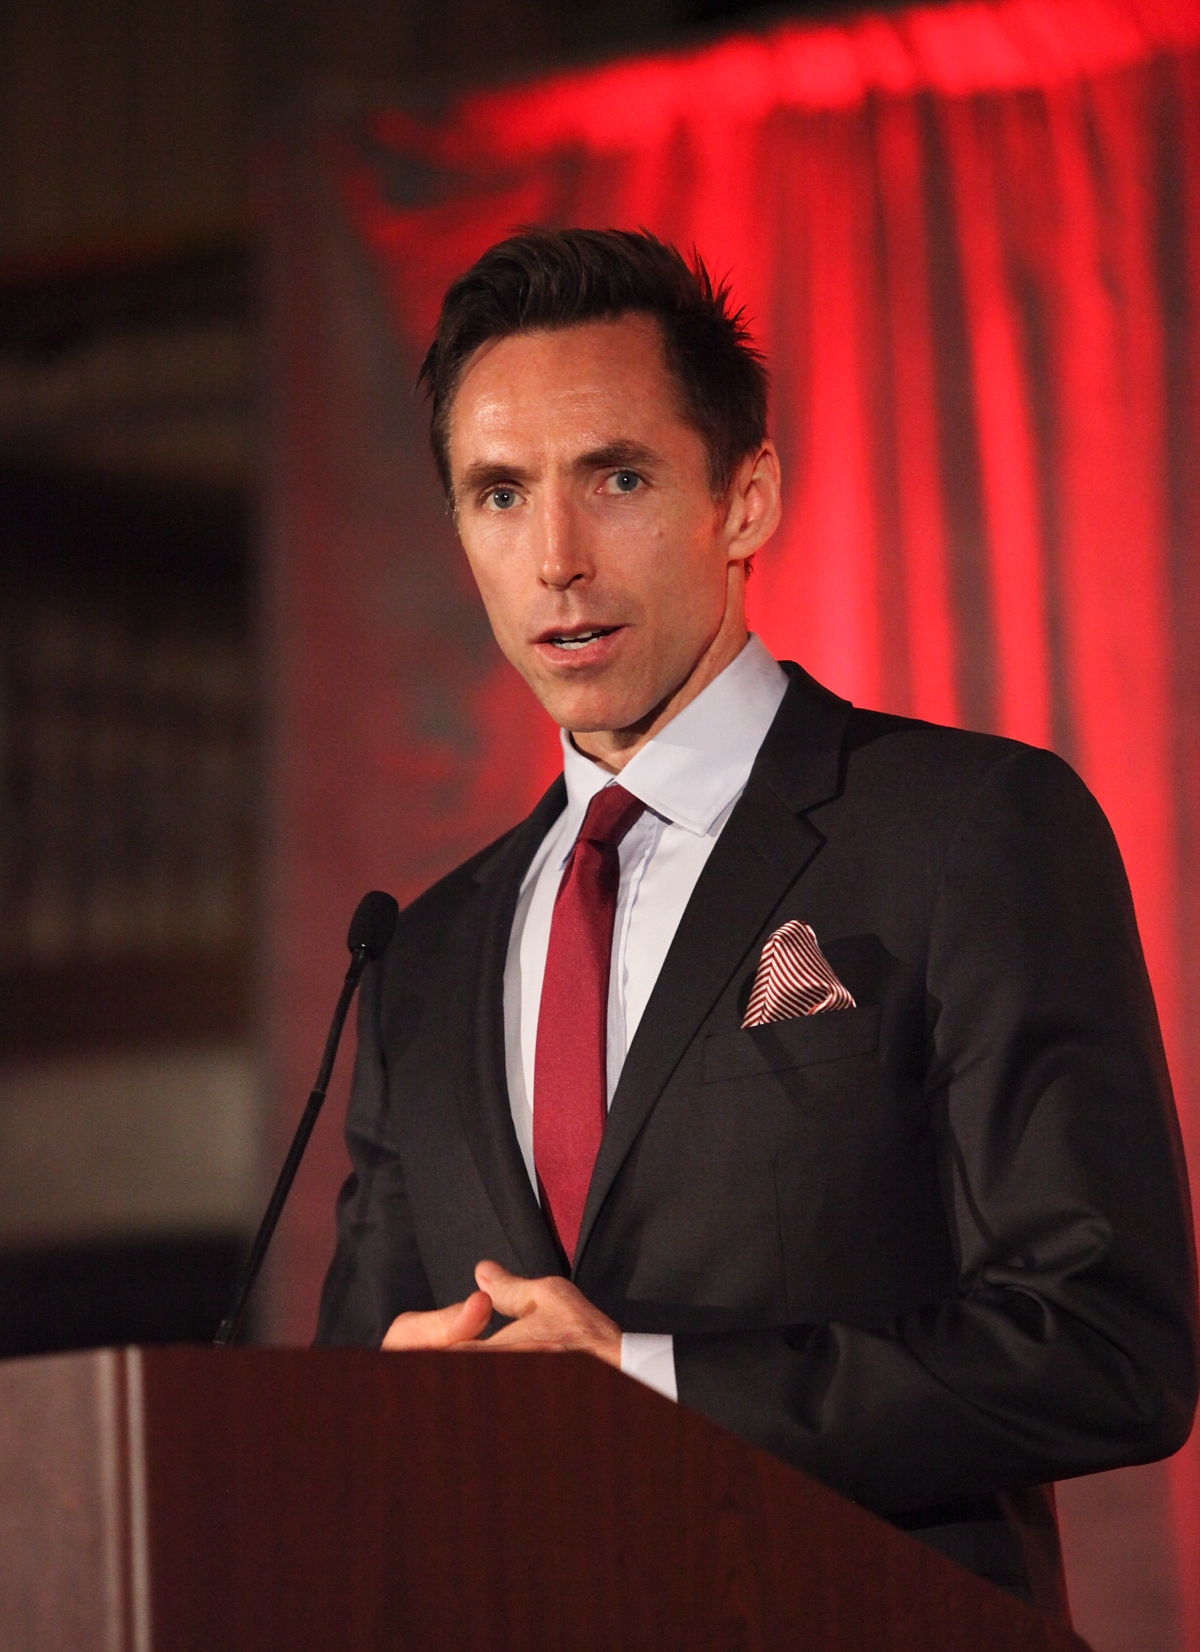 Steve Nash, LA Laker speaks during the Asia Society Southern California 2013 Annual Gala held at the Millennium Biltmore Hotel on Tuesday, February 19, 2013 in Los Angeles, Calif. (Photo by Ryan Miller/Capture Imaging)